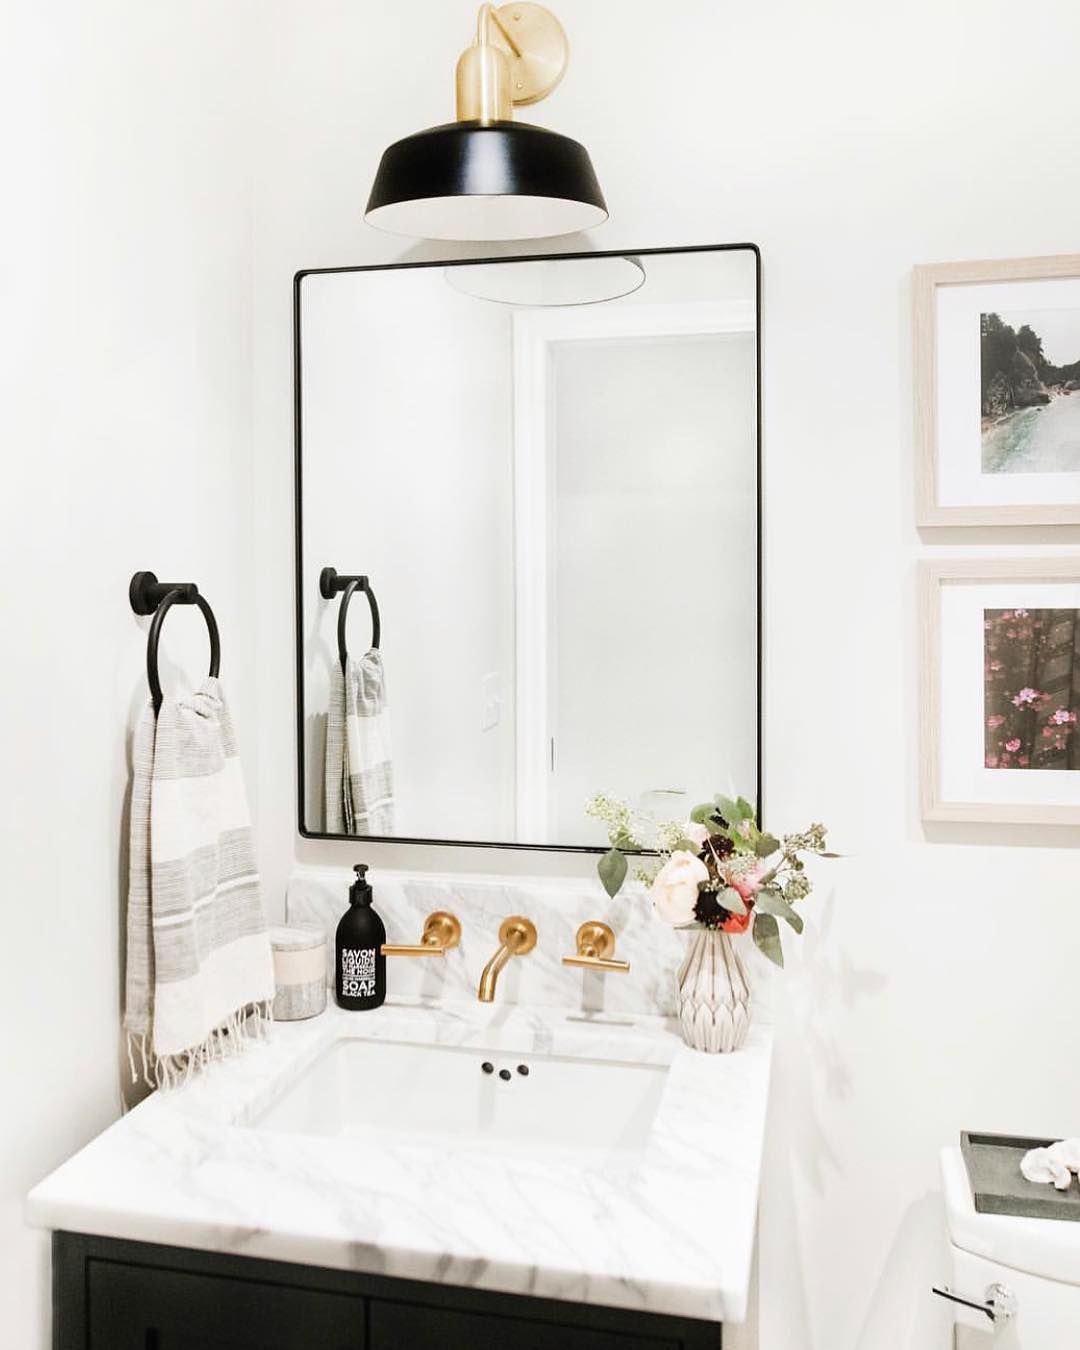 Marble Mixed Metal Finishes Yes Please Pretty Powder Room Design By Cohesivelycurated Including O Bathroom Mirror Design Powder Room Design Bathroom Model